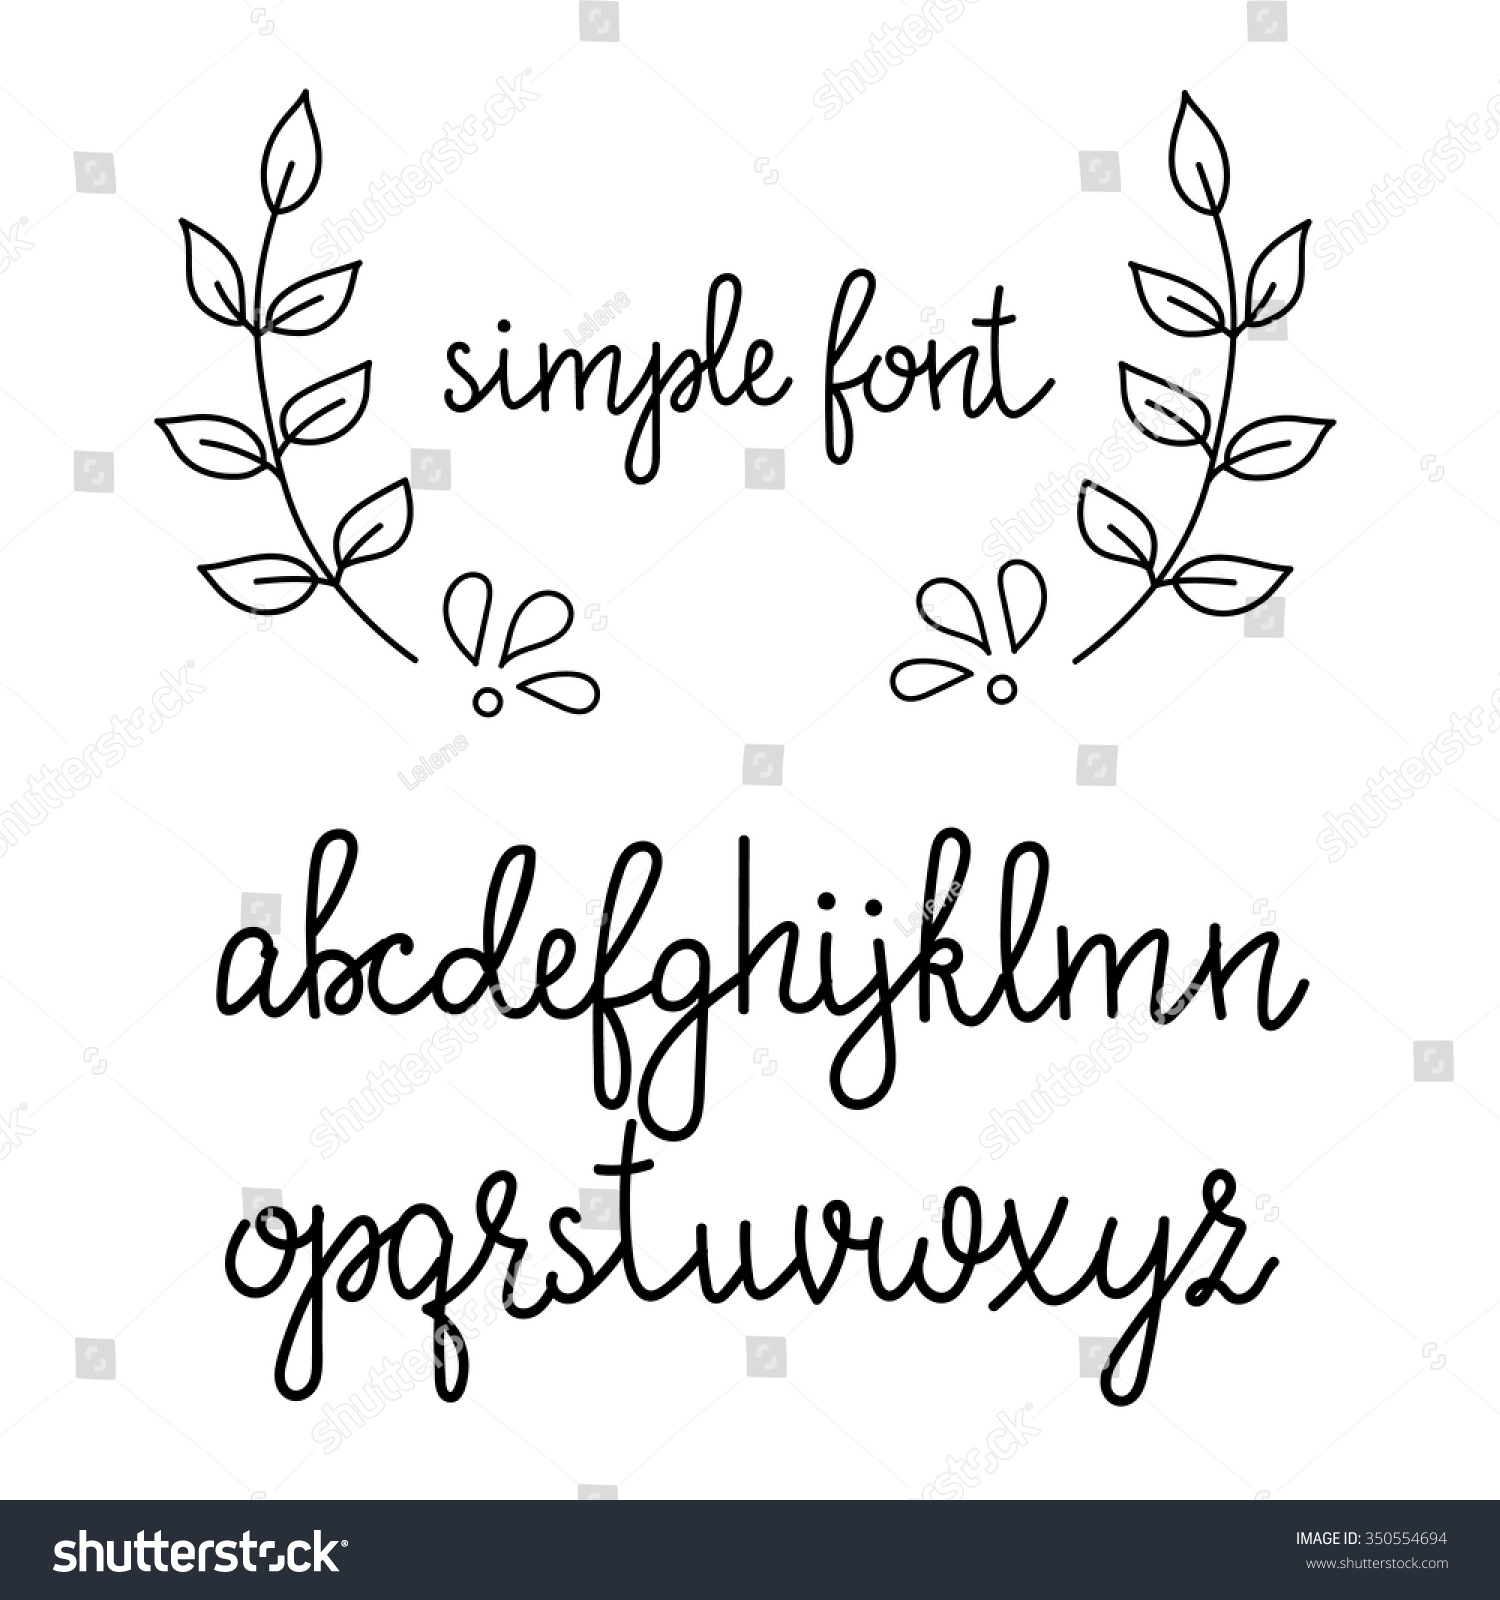 Simple Handwritten Pointed Pen Calligraphy Cursive Font Alphabet Cute Letters Isolated